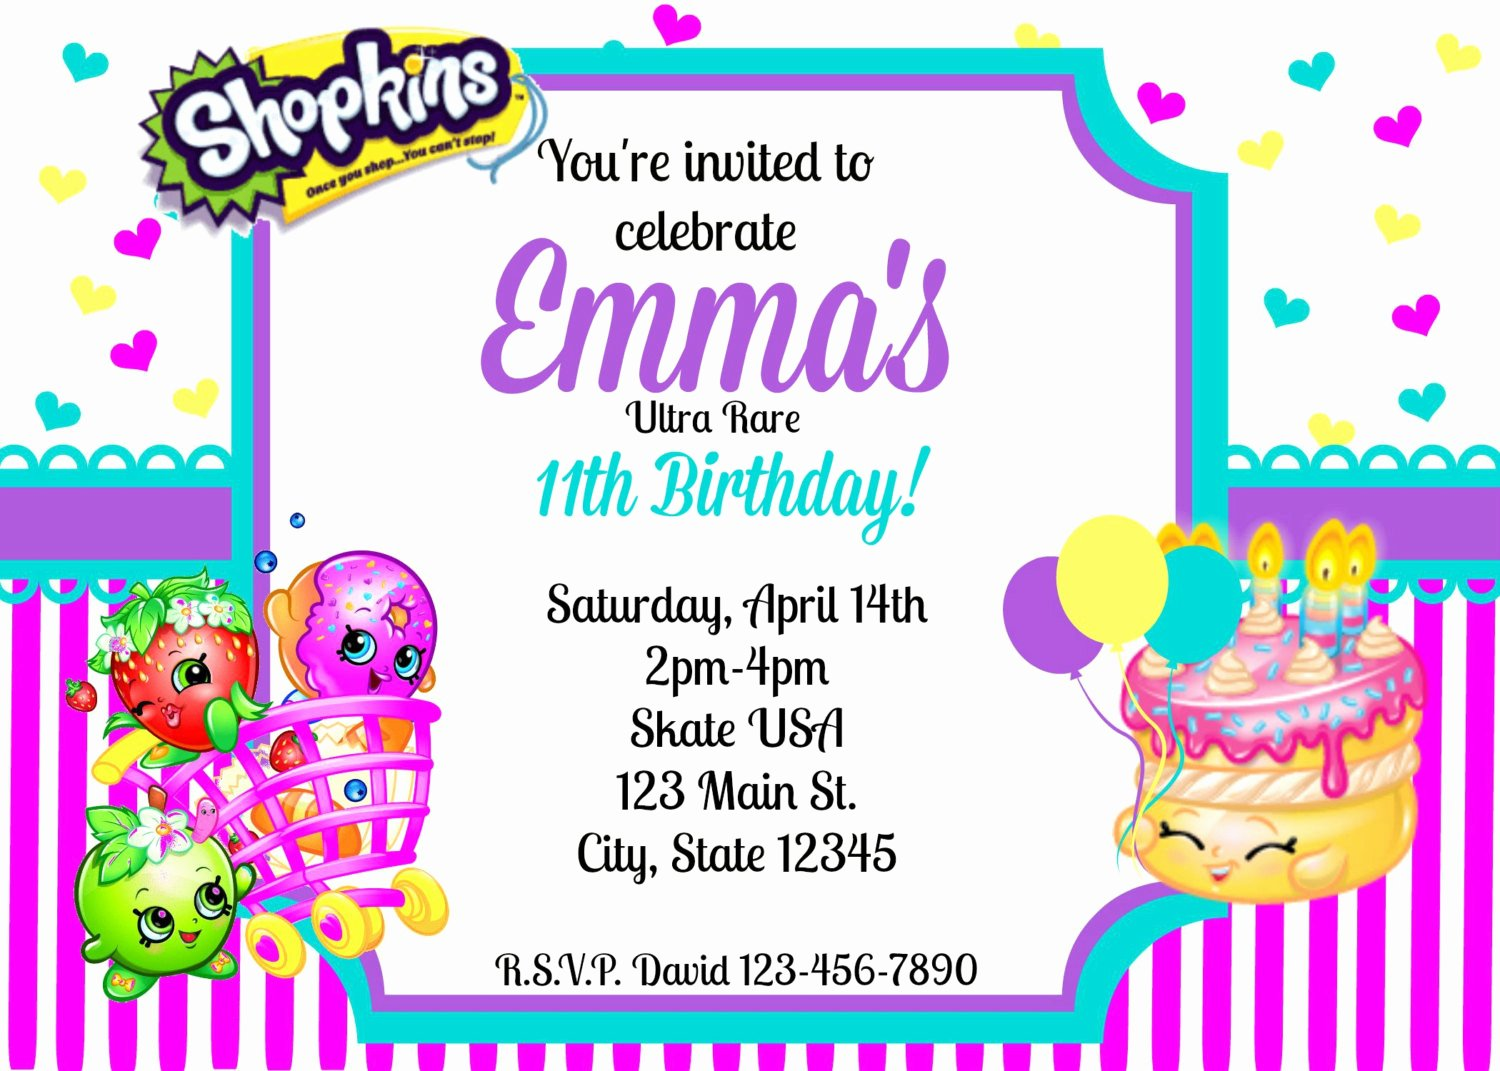 Shopkins Invitations Template Free Inspirational Shopkins Invitation Shopkins Party Invitation by